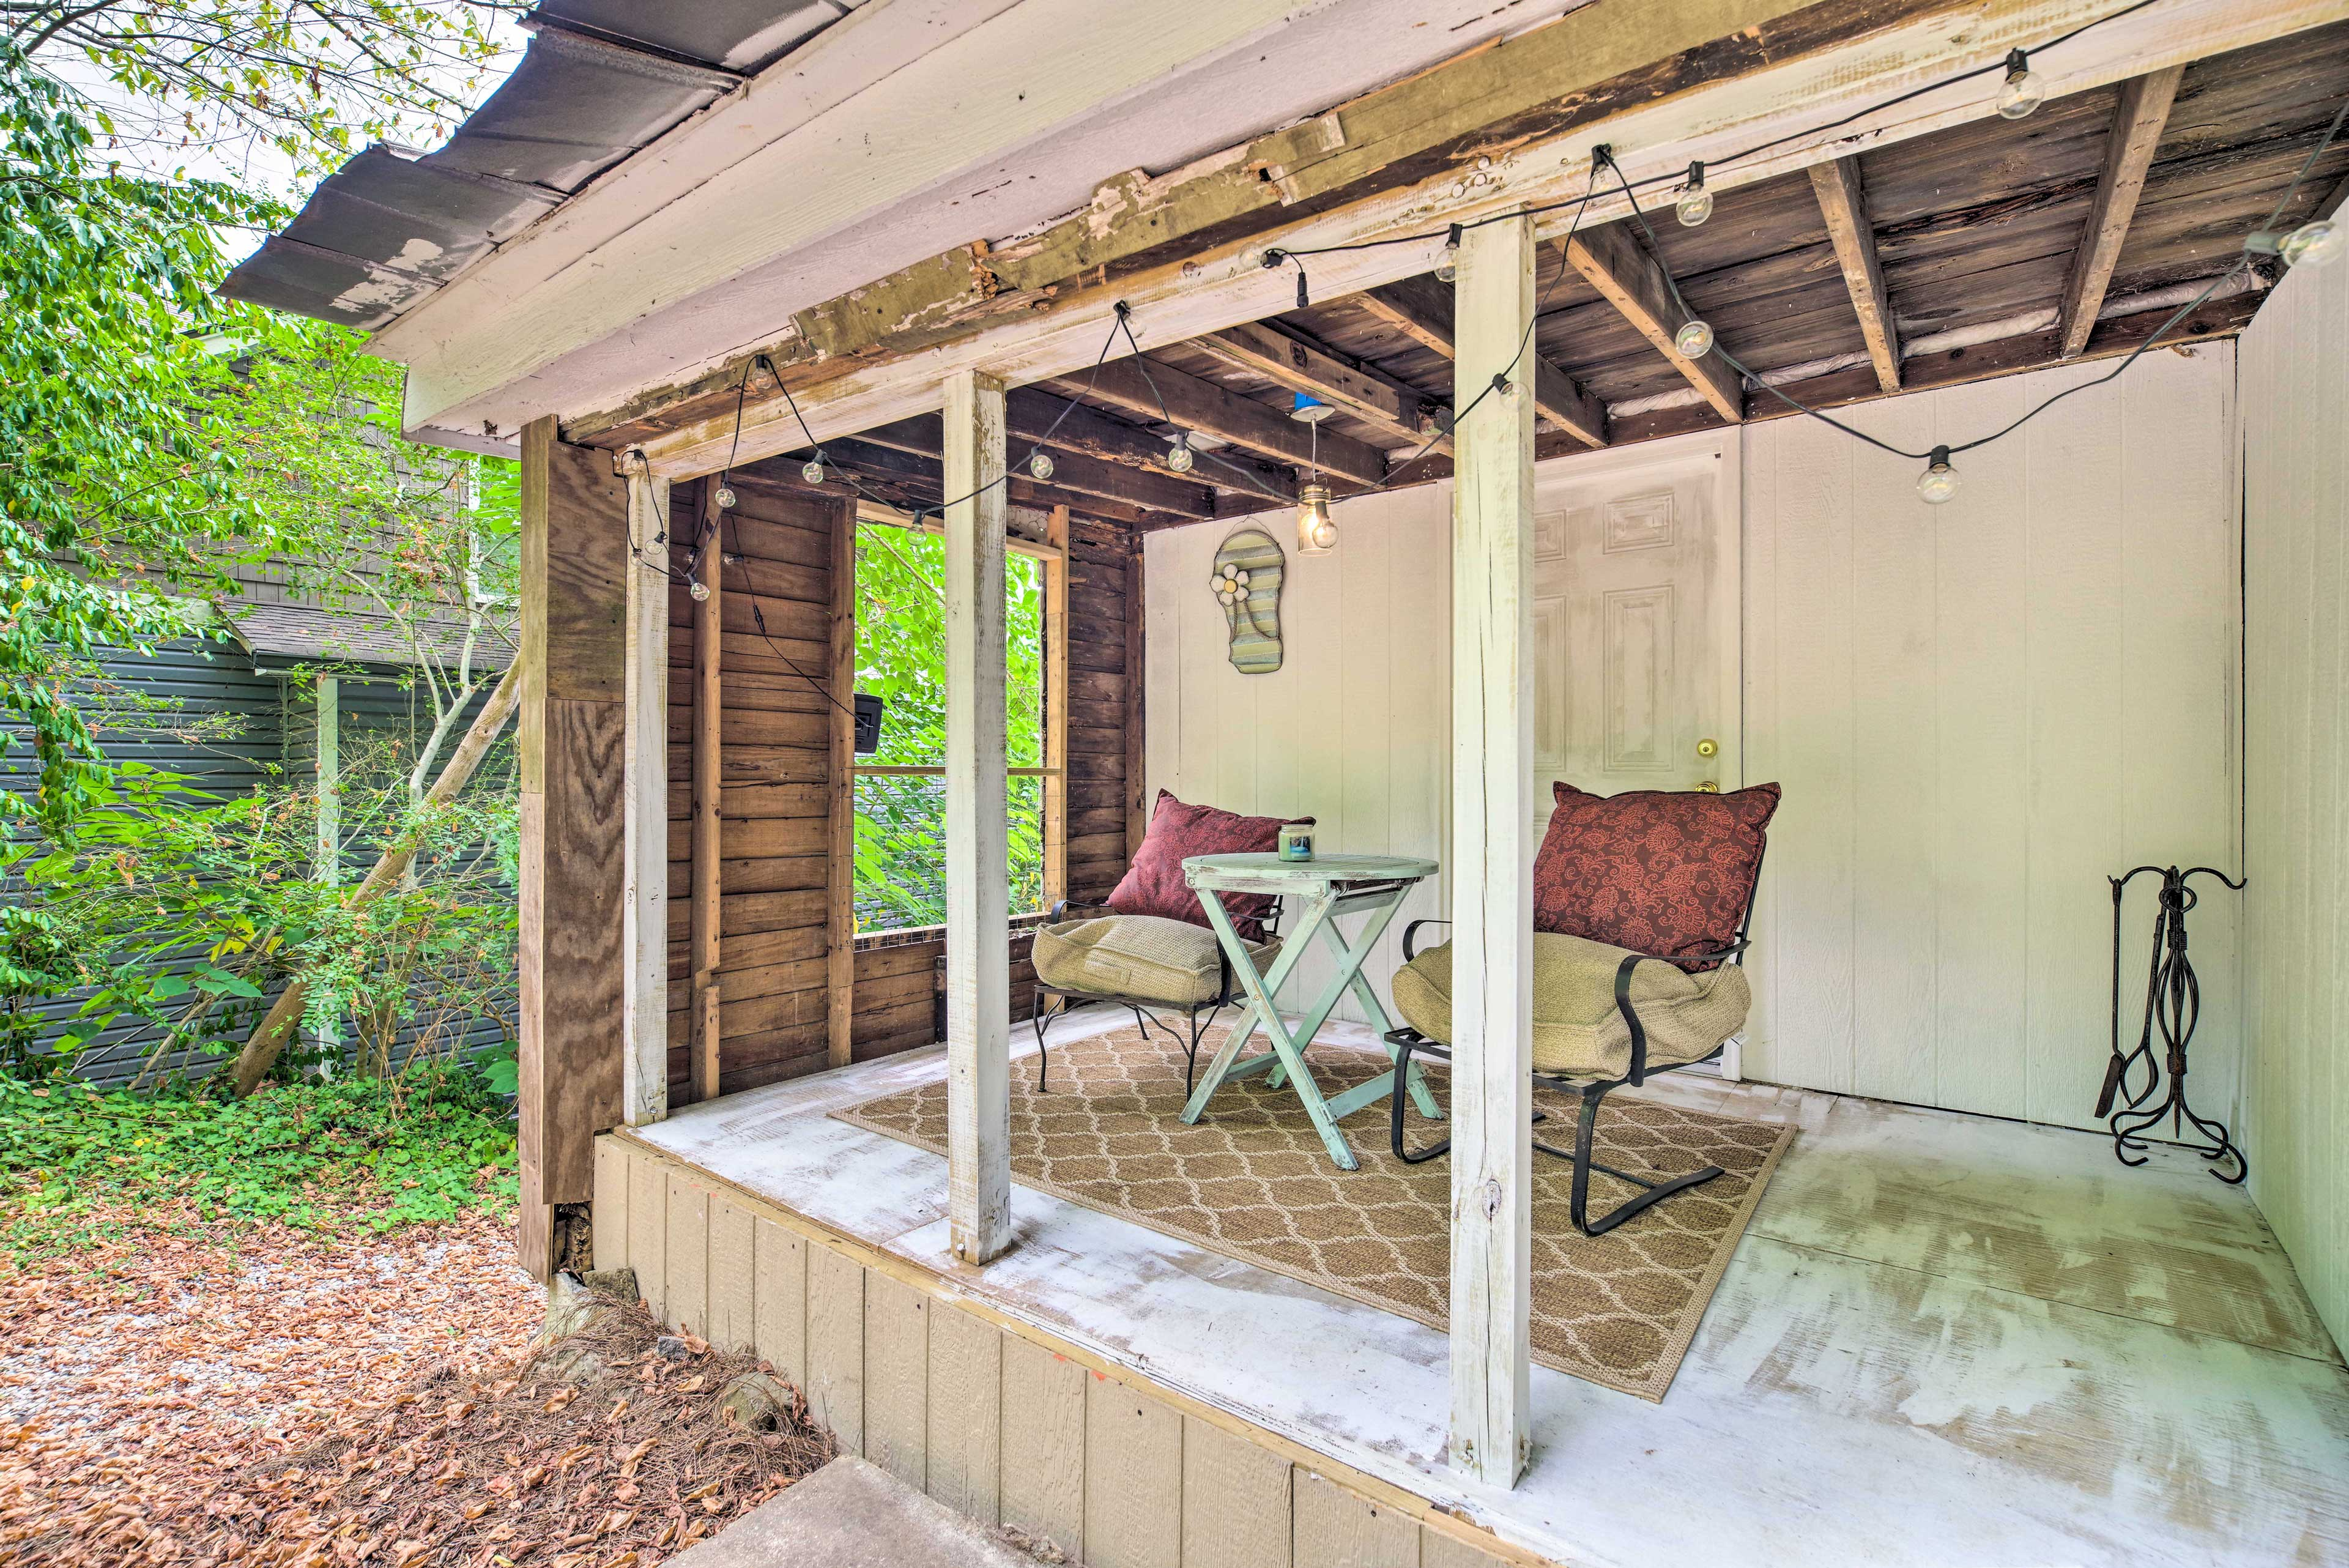 Spend your afternoons on the backyard porch!